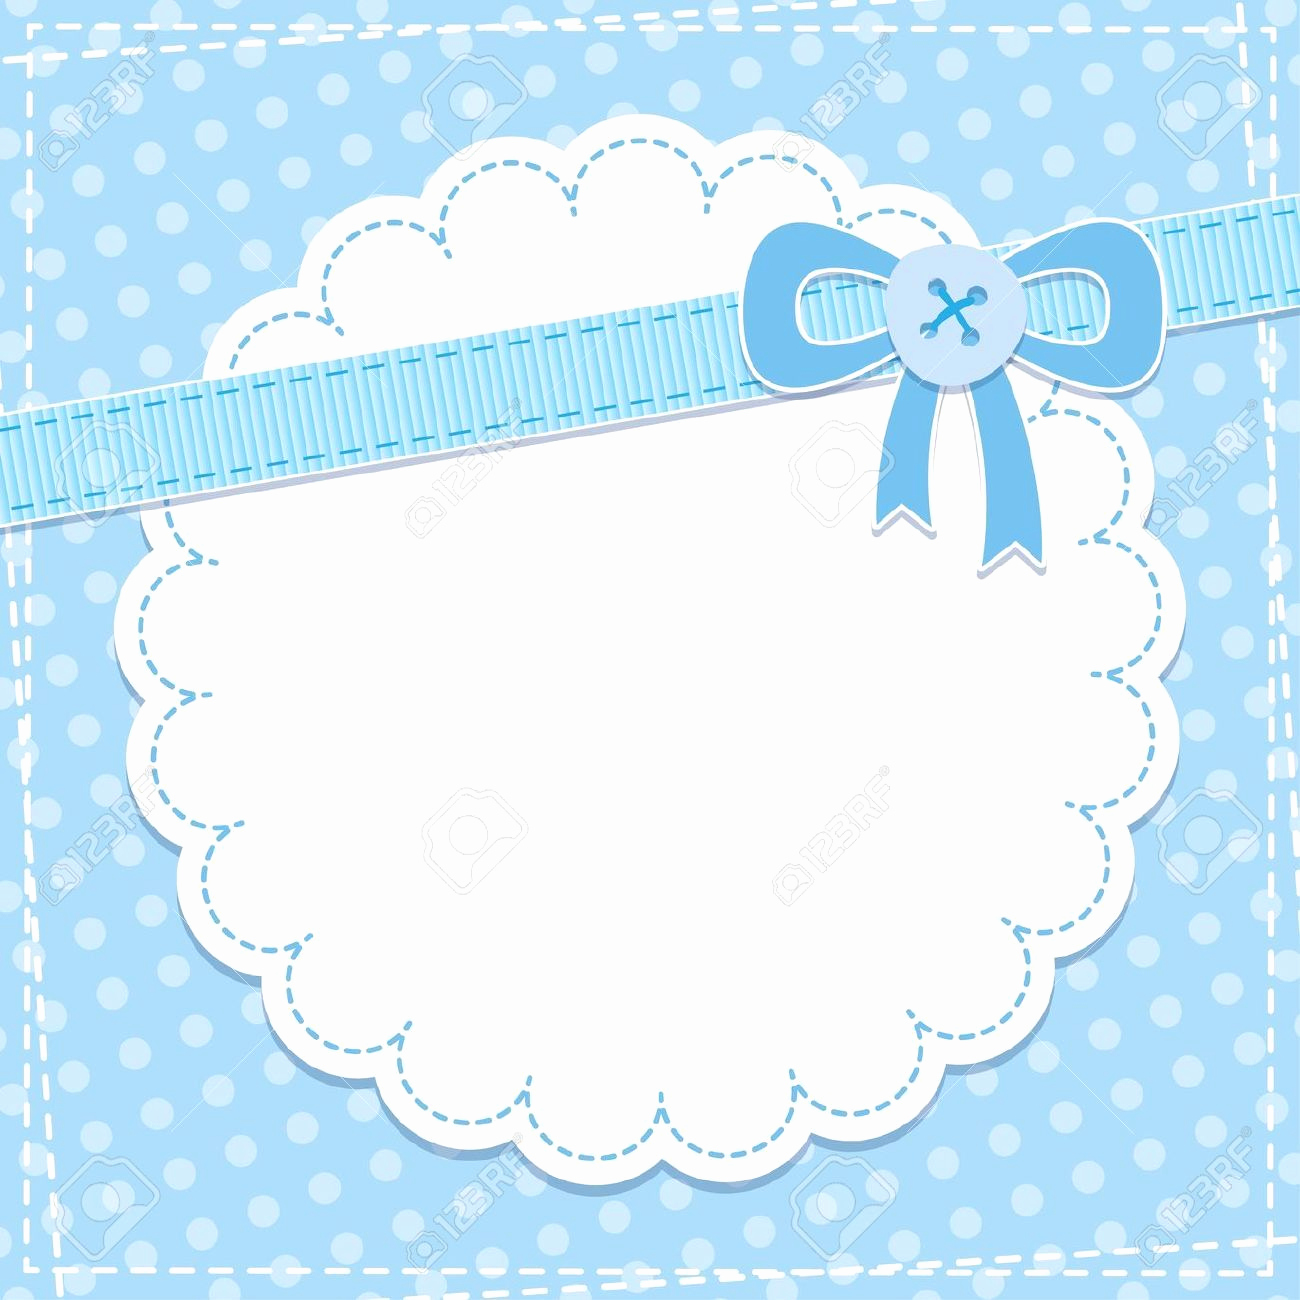 Baby Shower Invitation Clipart Awesome Baby Shower Invitation Stock Royalty